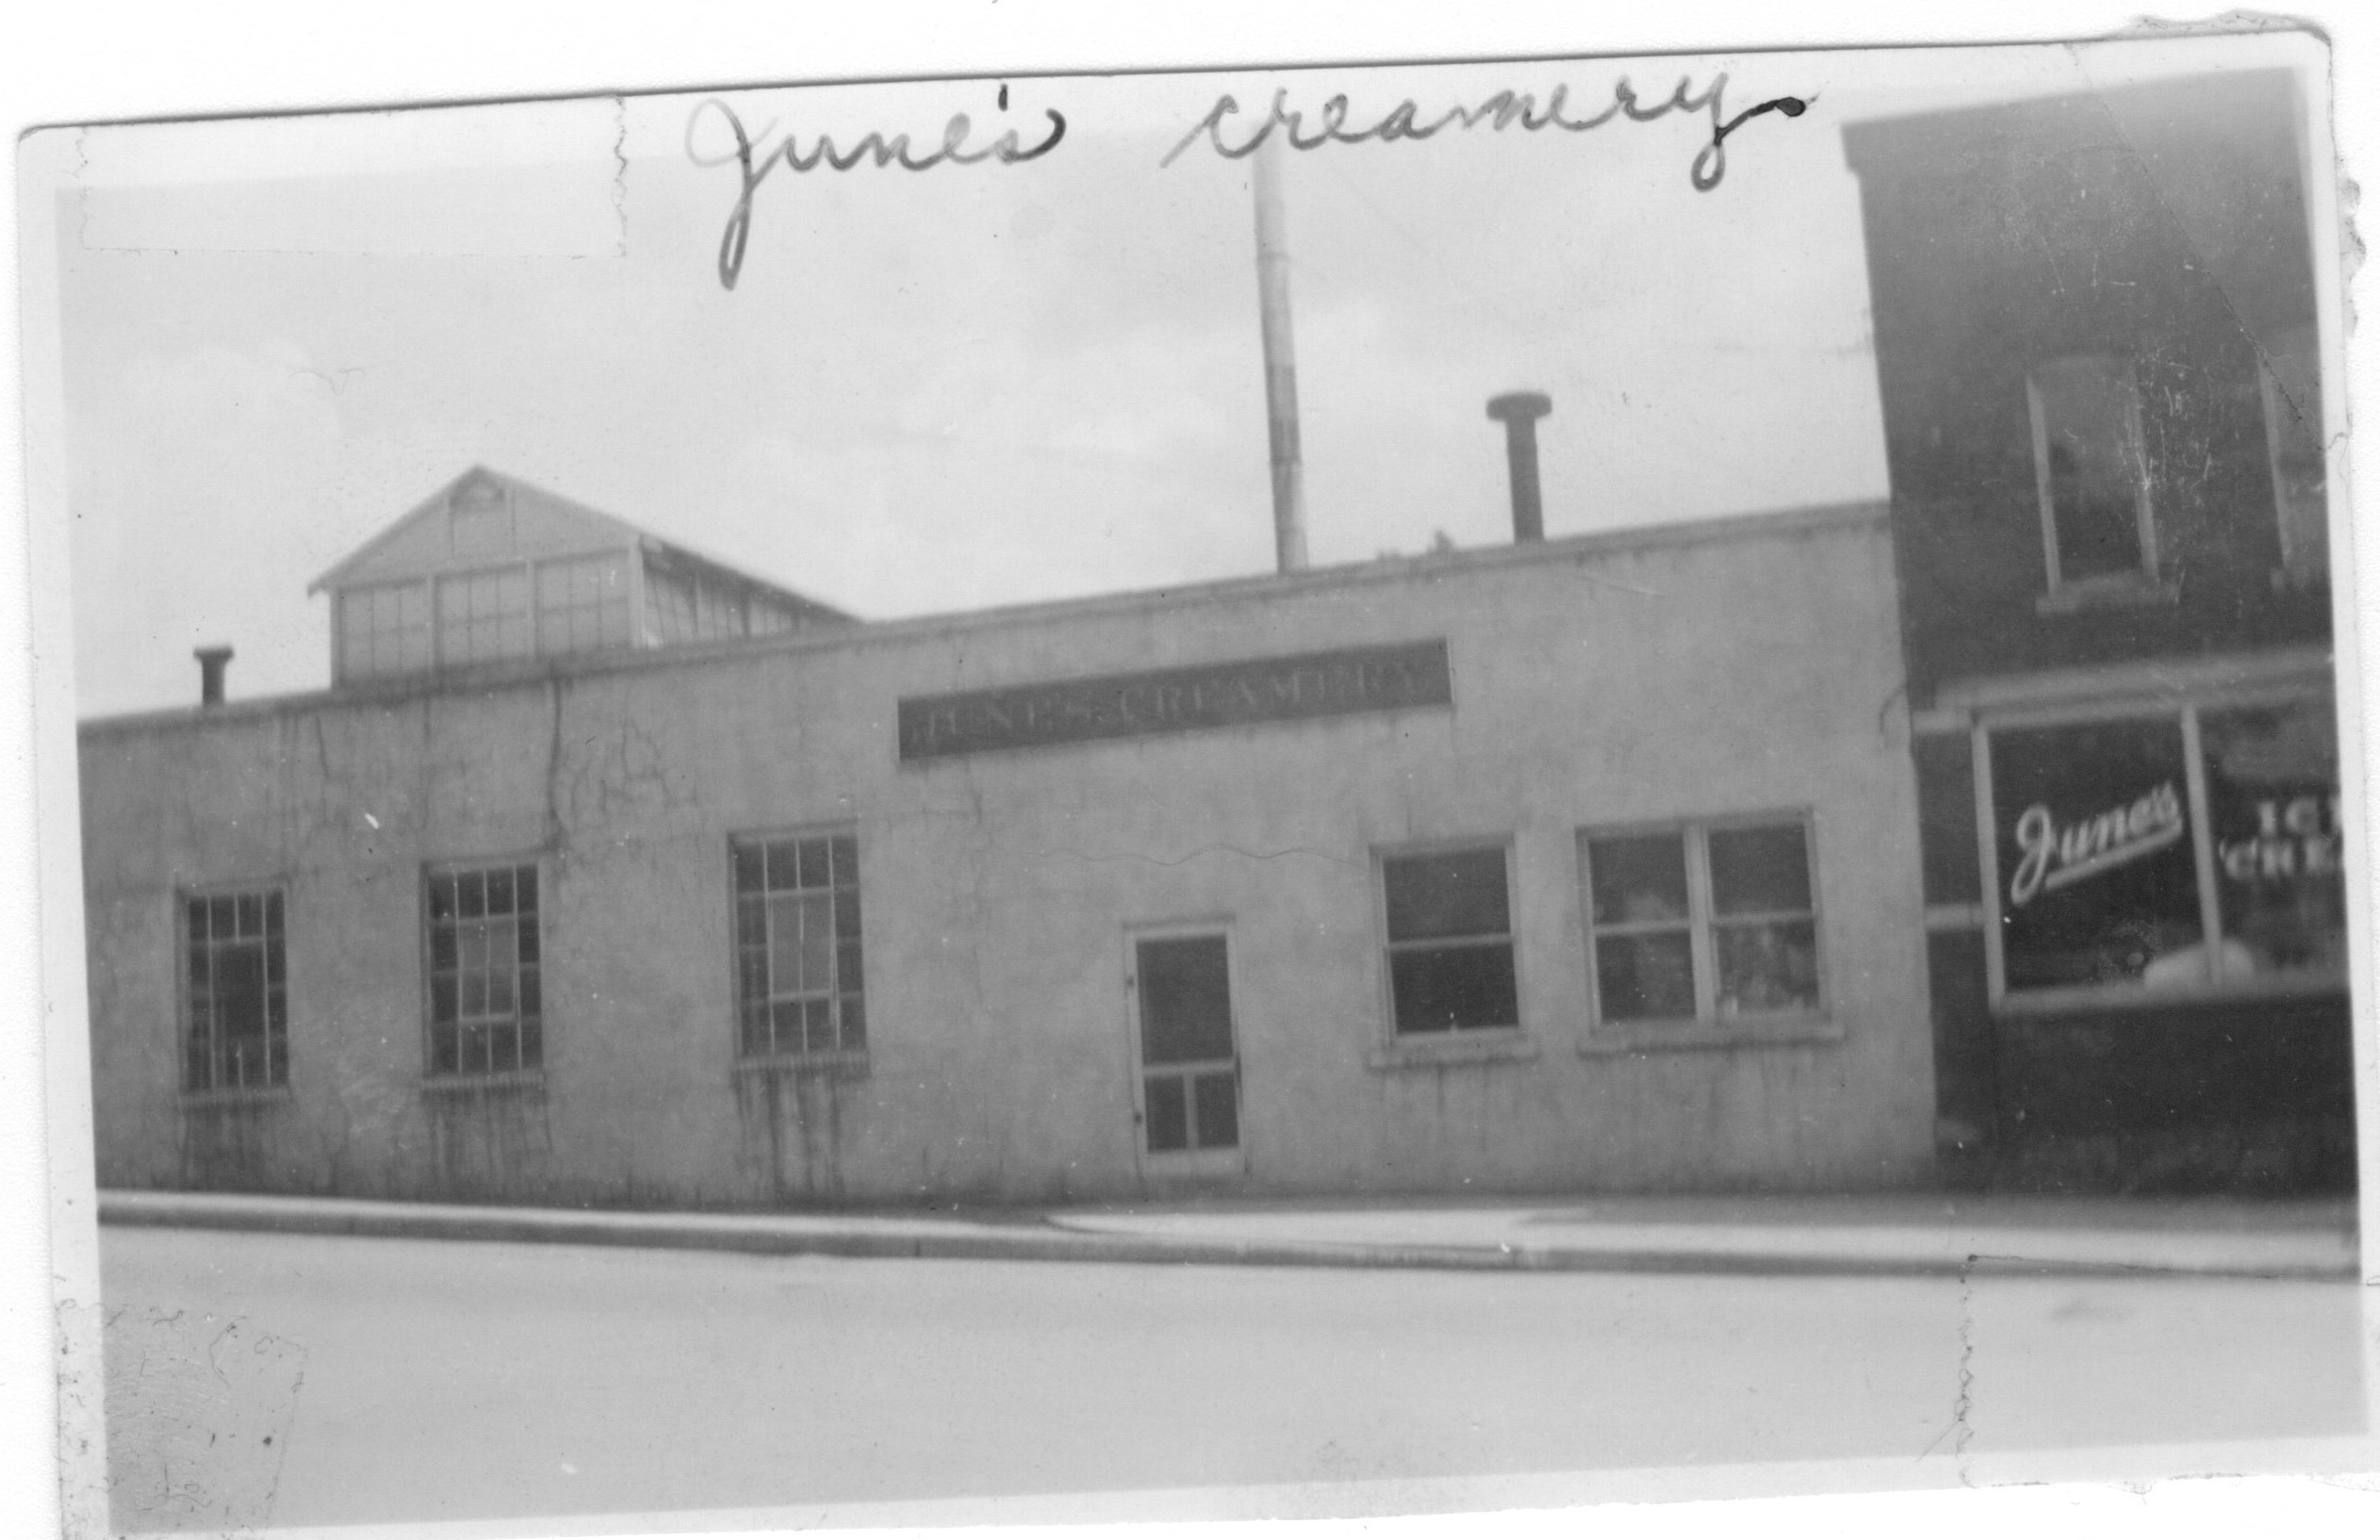 June's Creamery 303-305 Main St